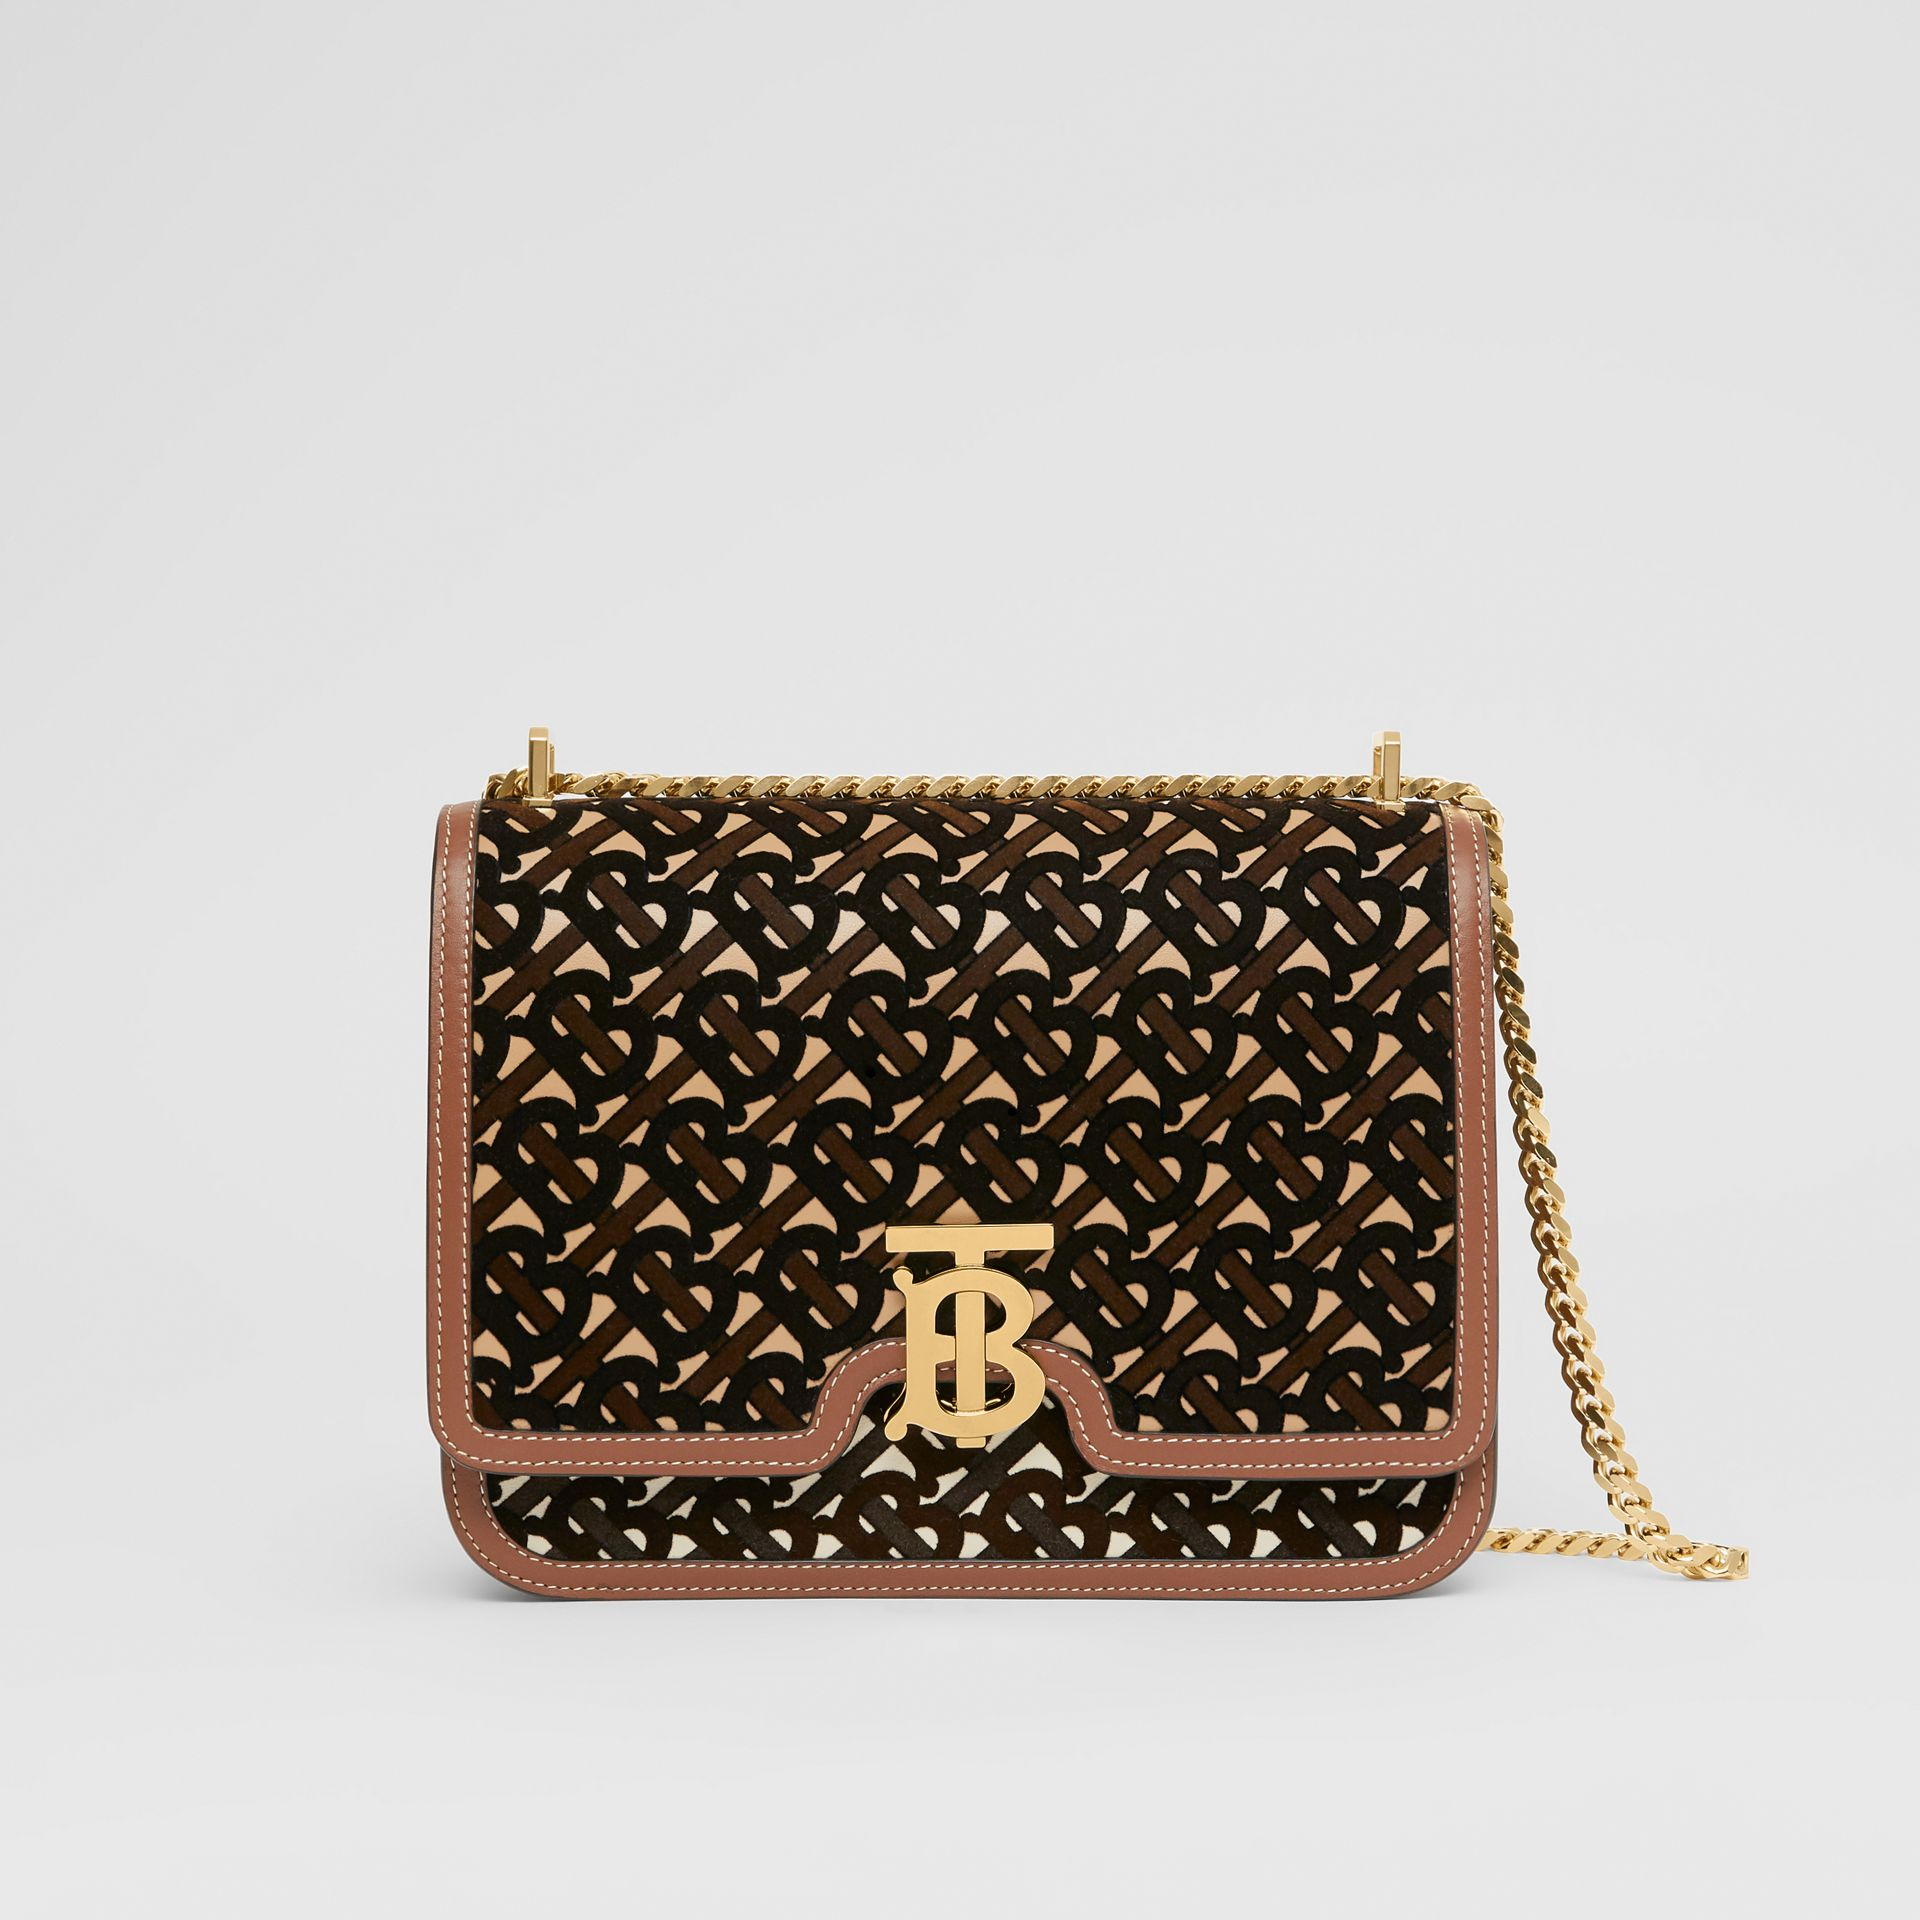 Medium Monogram Flocked Leather TB Bag in Dark Brown - Women | Burberry Canada - gallery image 0